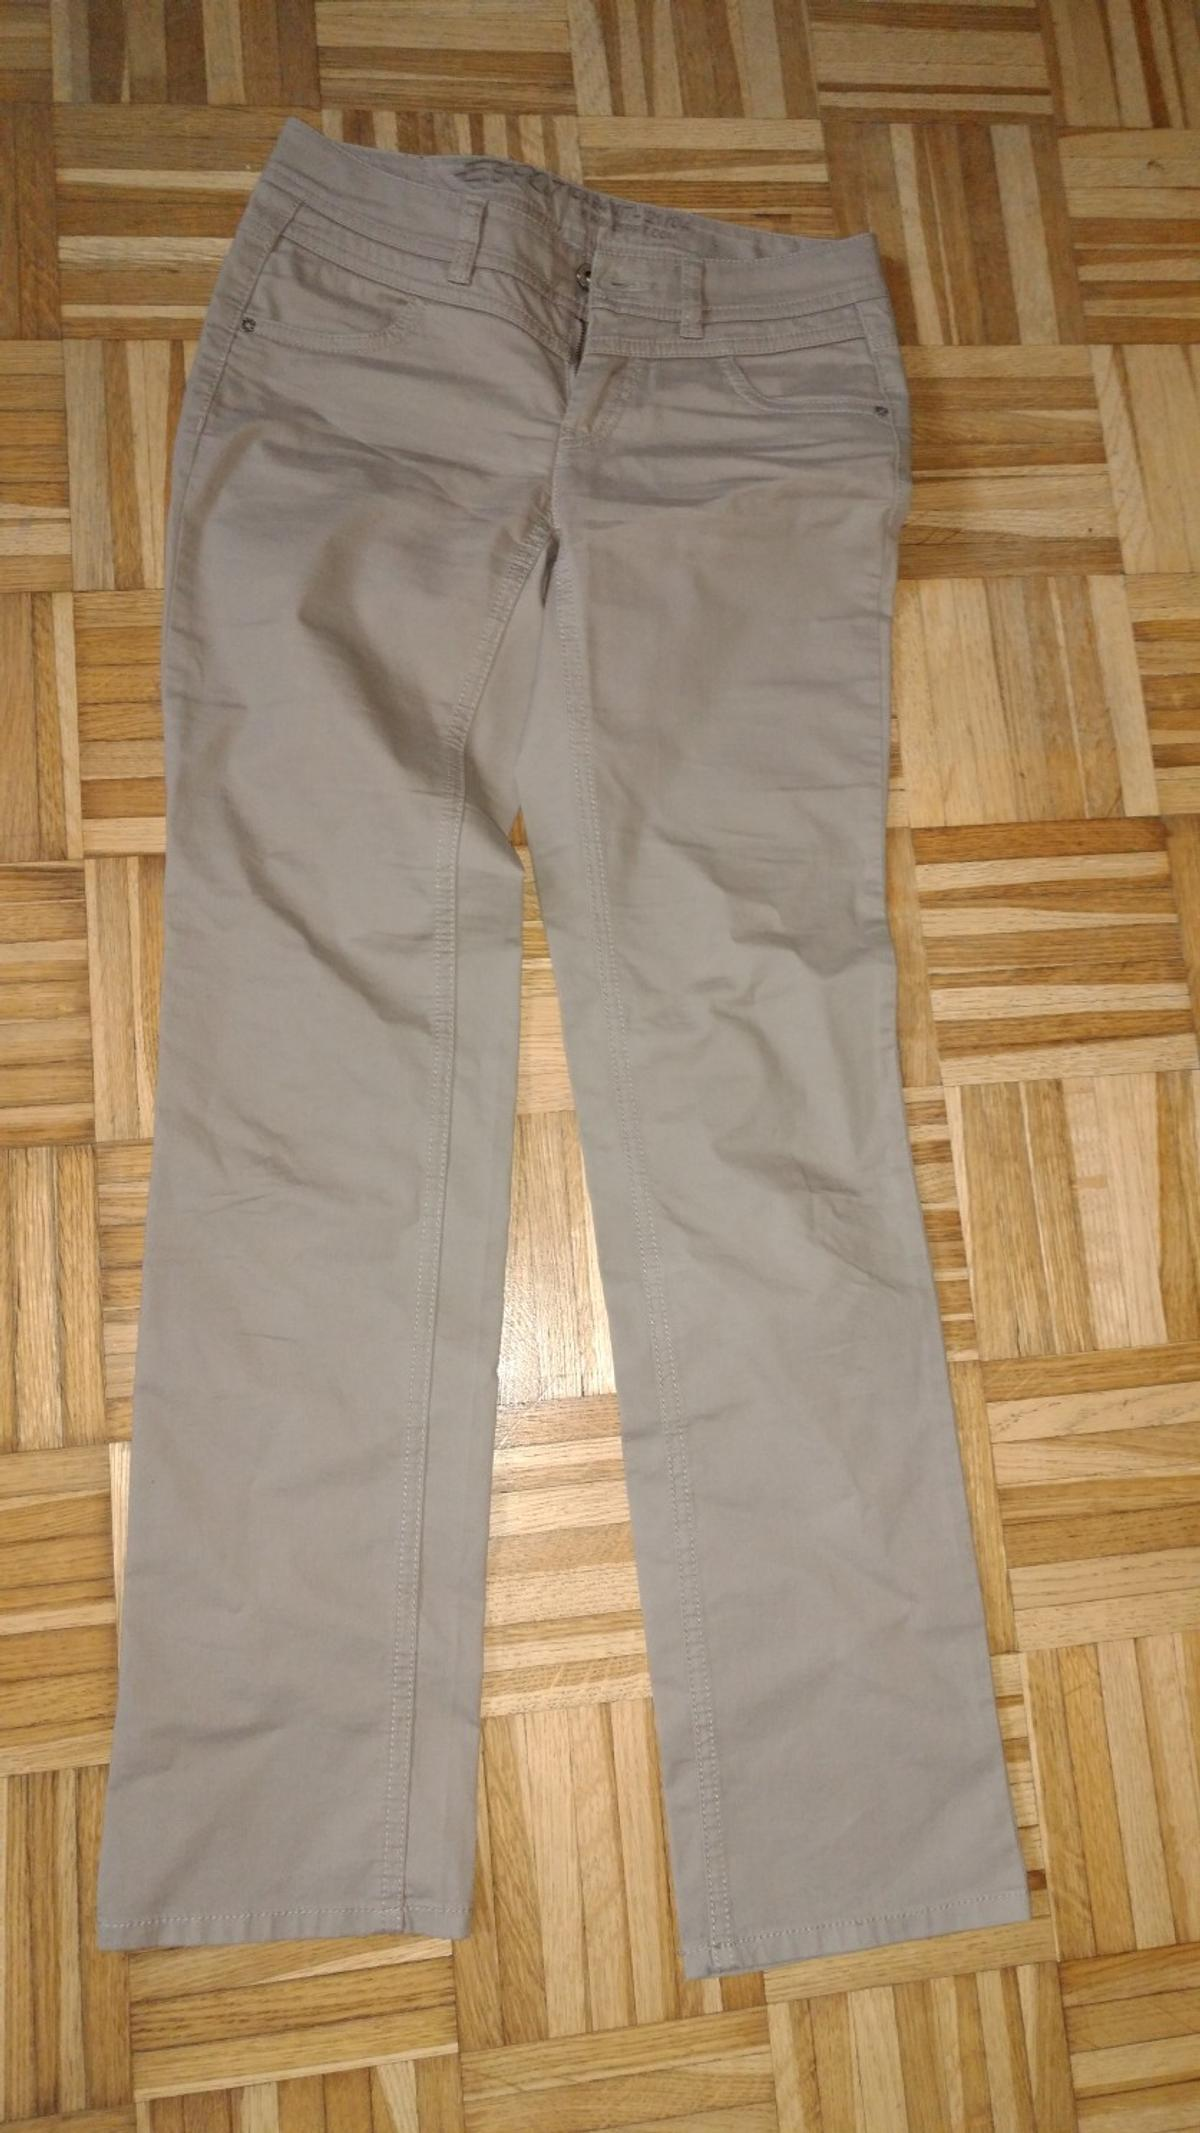 Esprit Damen Hose 34 in 5020 Salzburg for €22.00 for sale